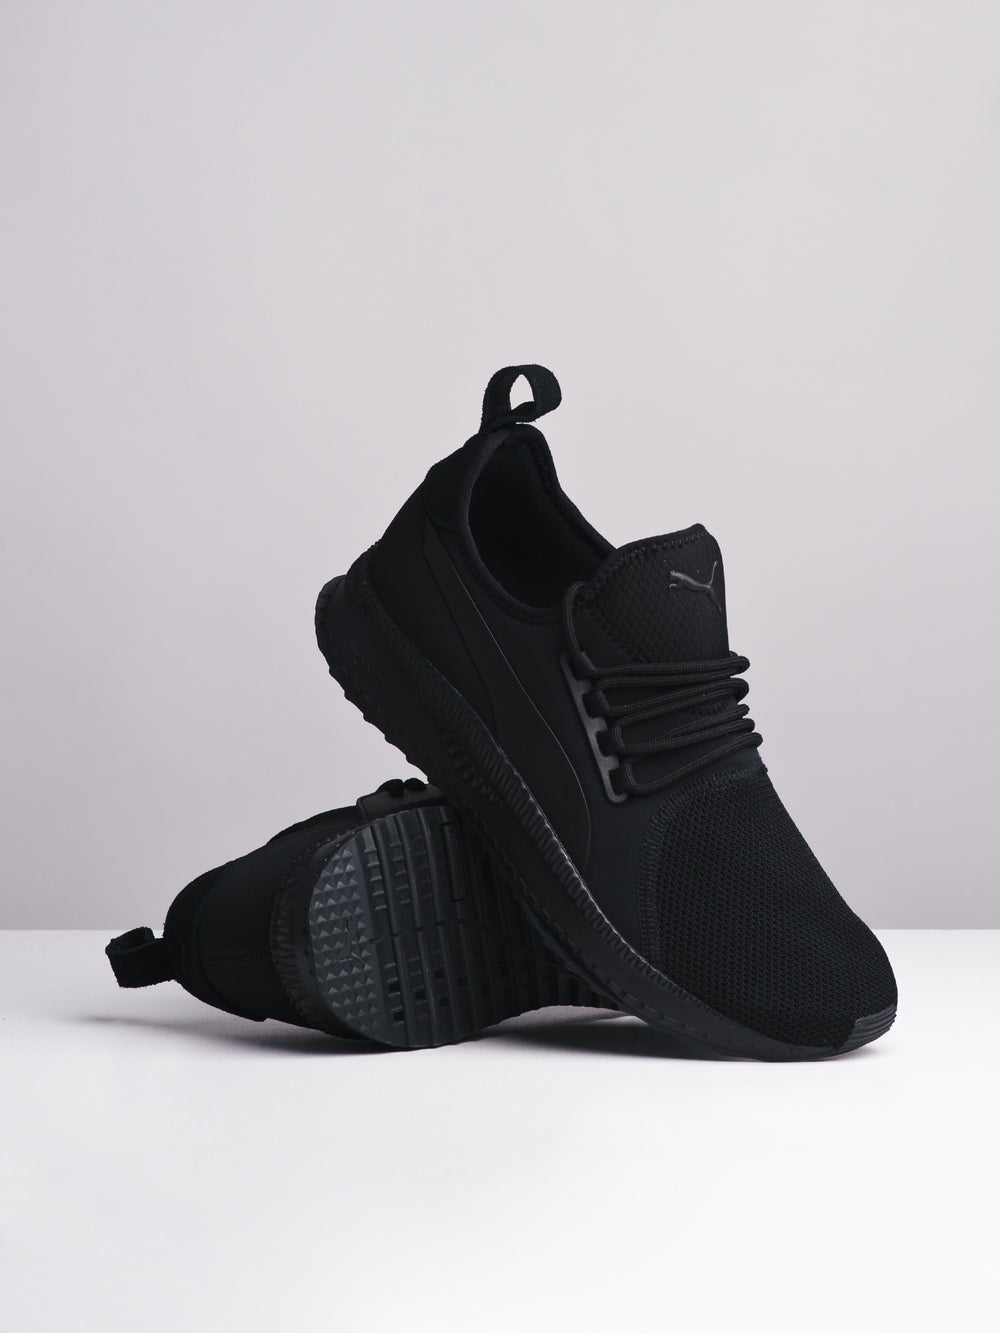 MENS TSUGI APEX PUMA BLACK SNEAKERS - CLEARANCE